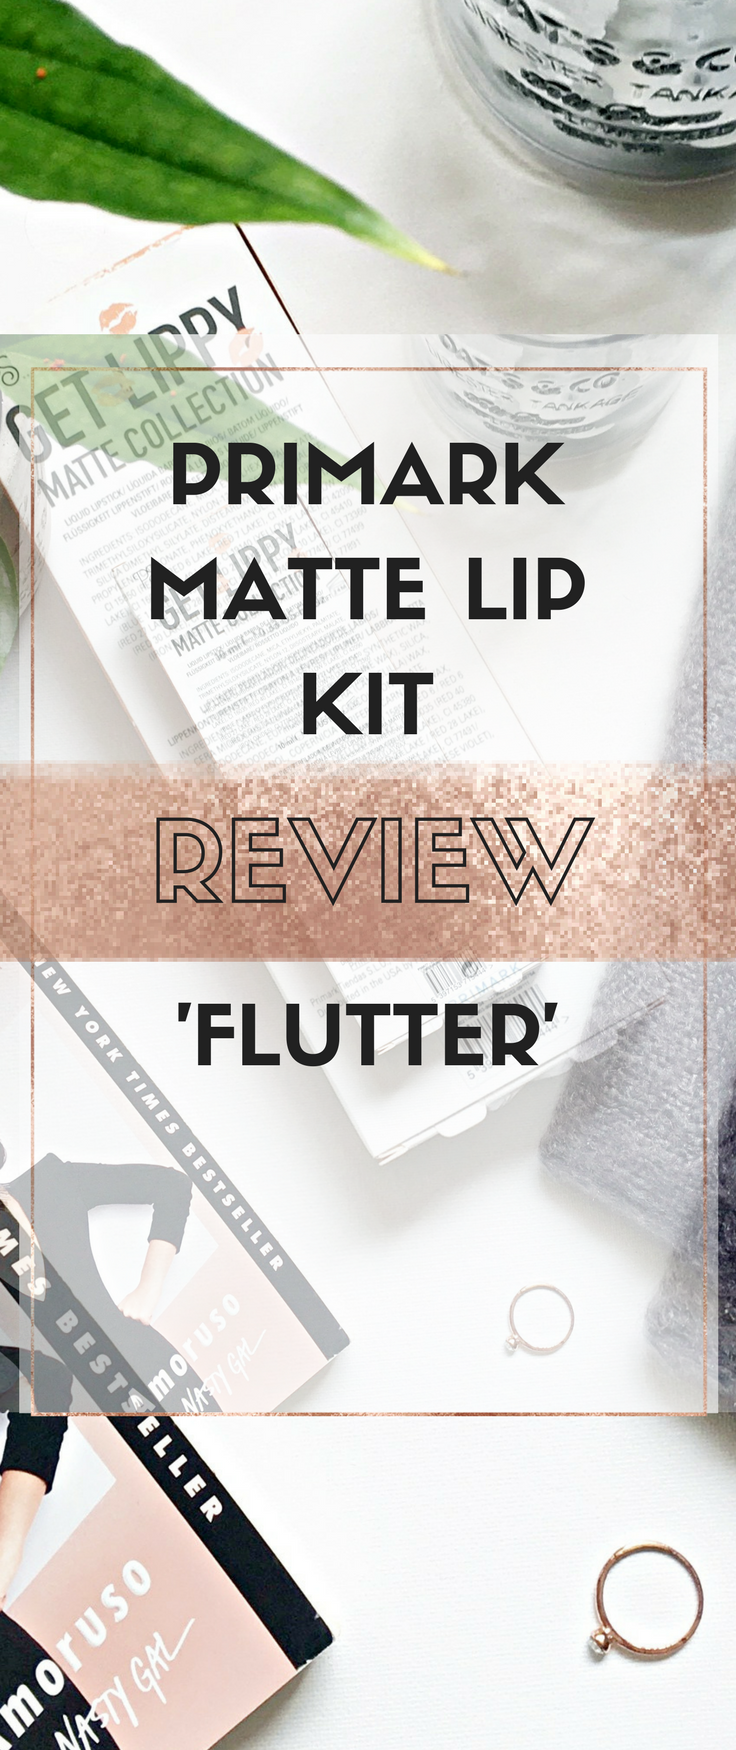 Primark-beauty-makeup-matte-lip-kit-flutter-kylie-lip-kit-review-bridal-makeup